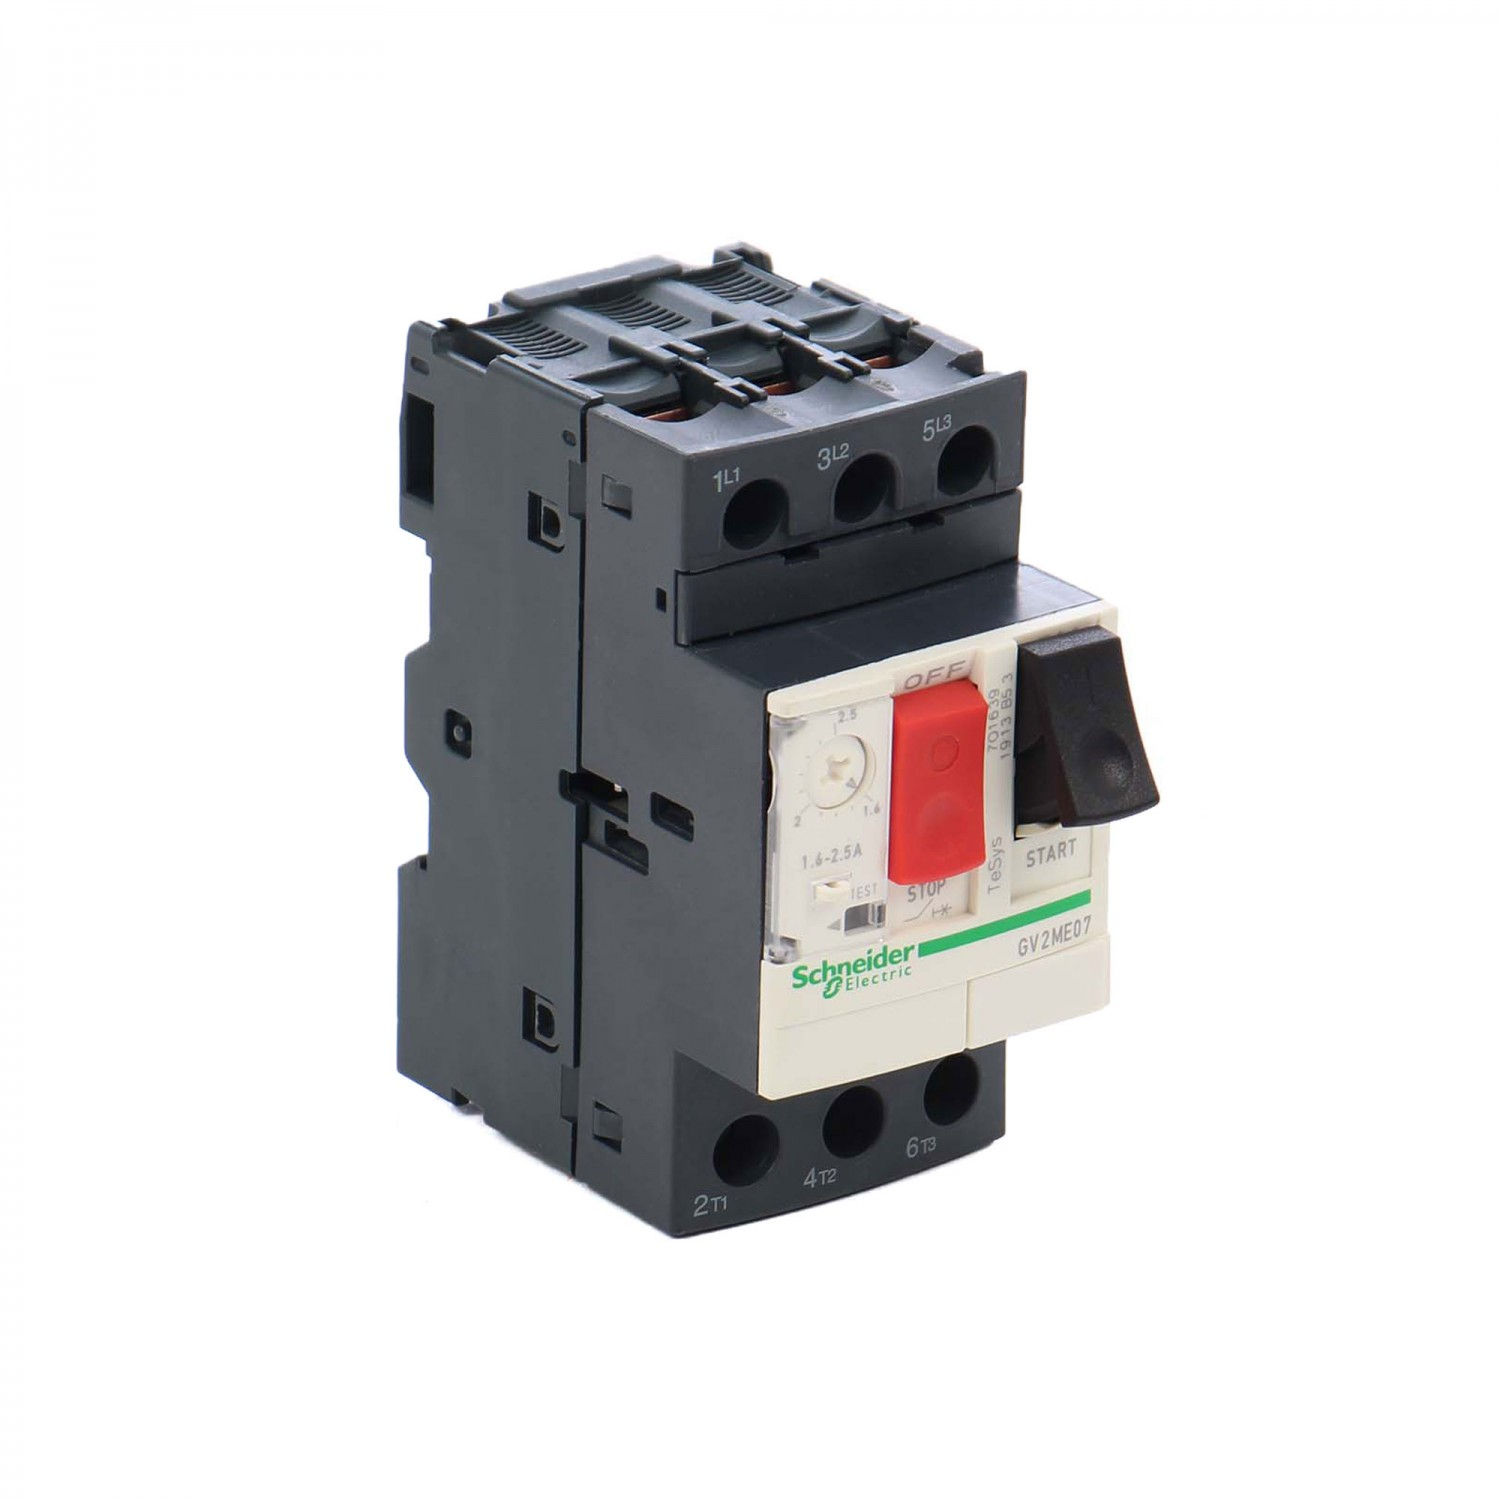 Disjunctor motor Schneider Electric TeSys GV2ME07, termo-magnetic, 3 poli, 1.6 - 2.5 A